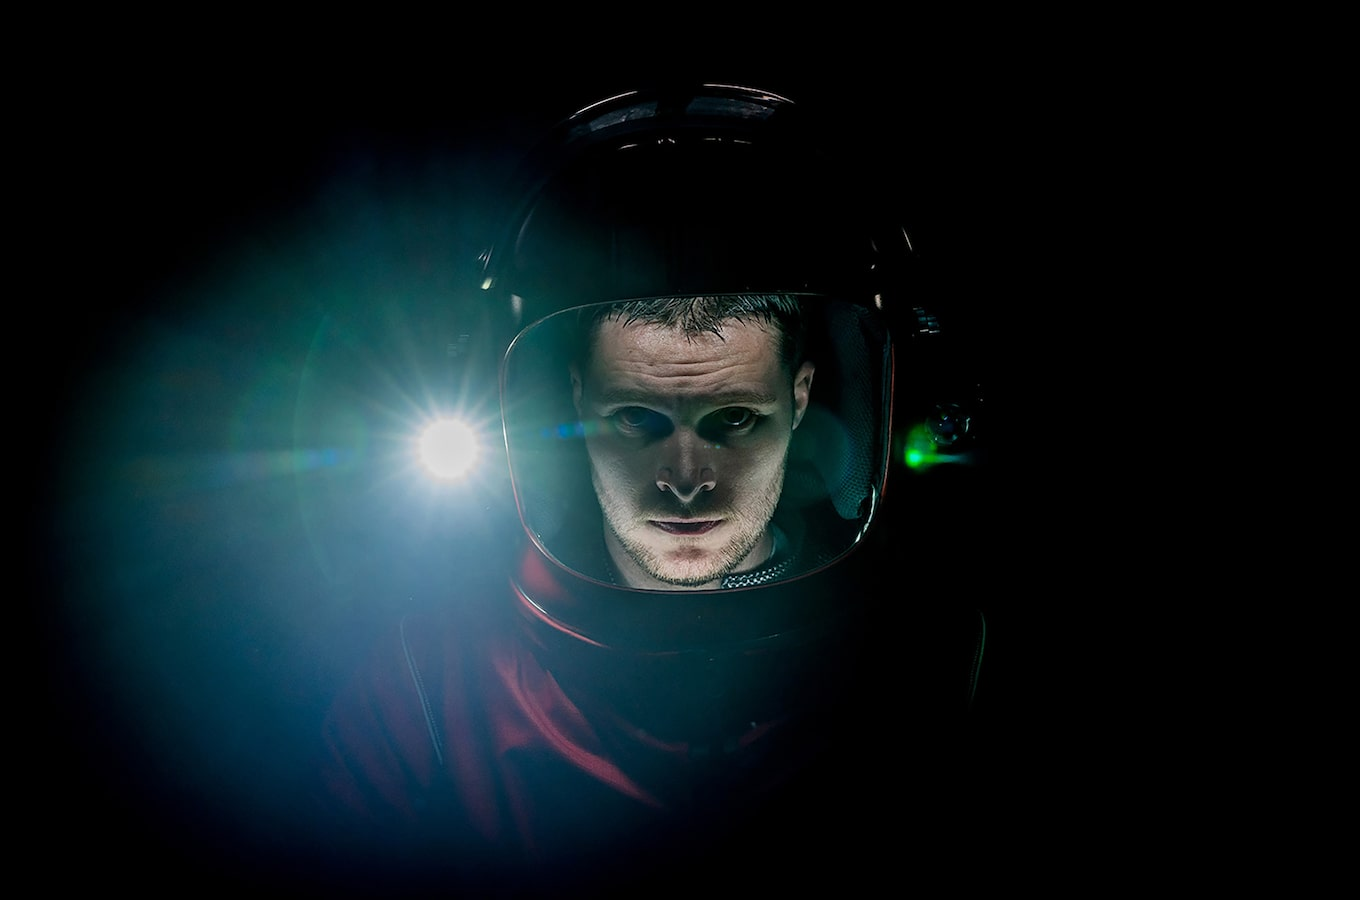 chris-raphael-sony-alpha-7RII-man-wearing-deep-sea-diver-helmet-impossible-planet